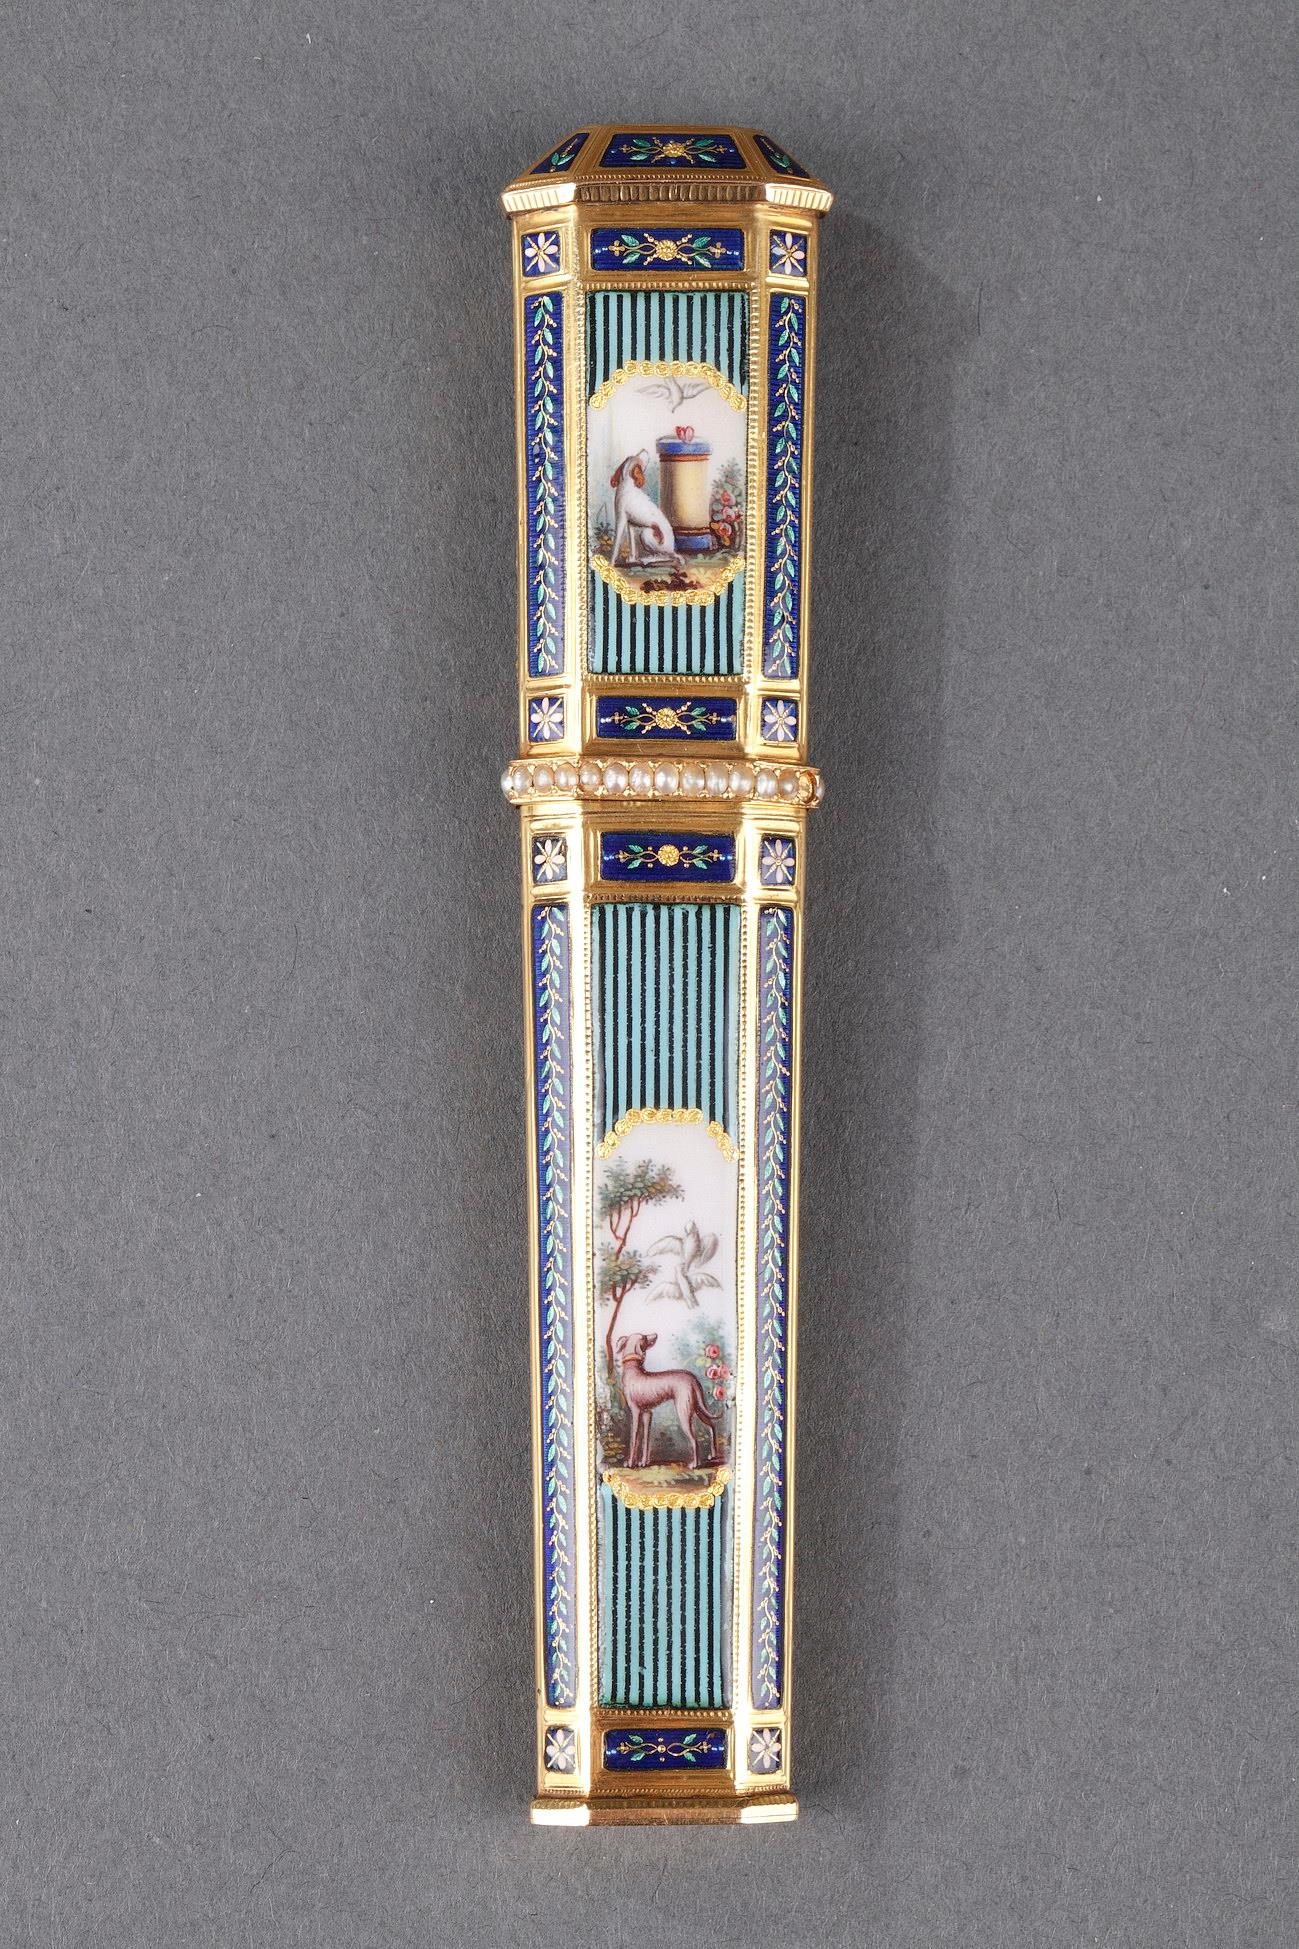 GOLD, ENAMEL, AND PEARL NEEDLE CASE. <br/> SWISS CRAFTSMANSHIP. LATE 18TH CENTURY.